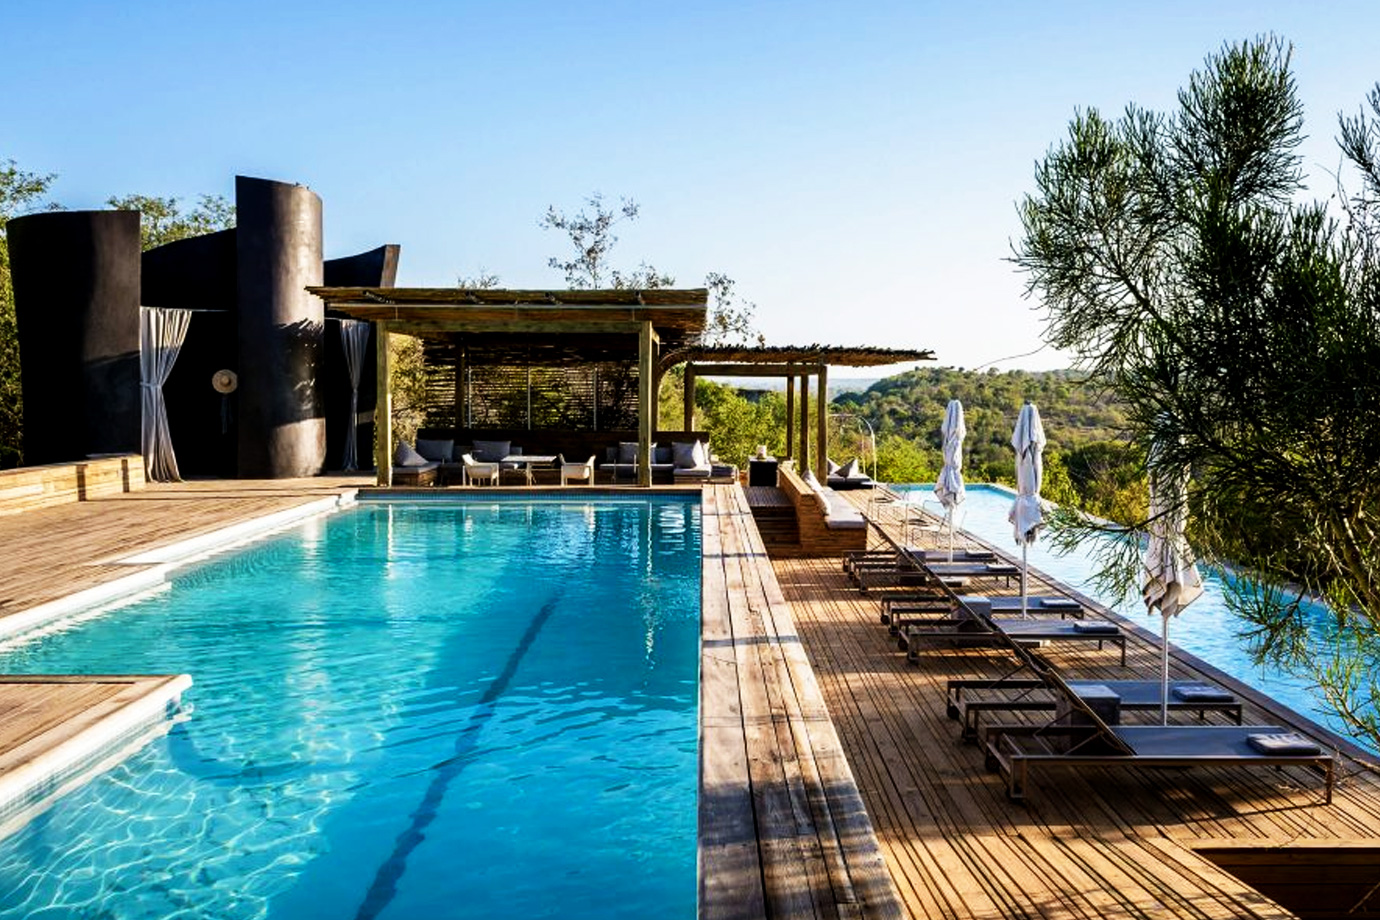 Tanzaia Luxury Safari